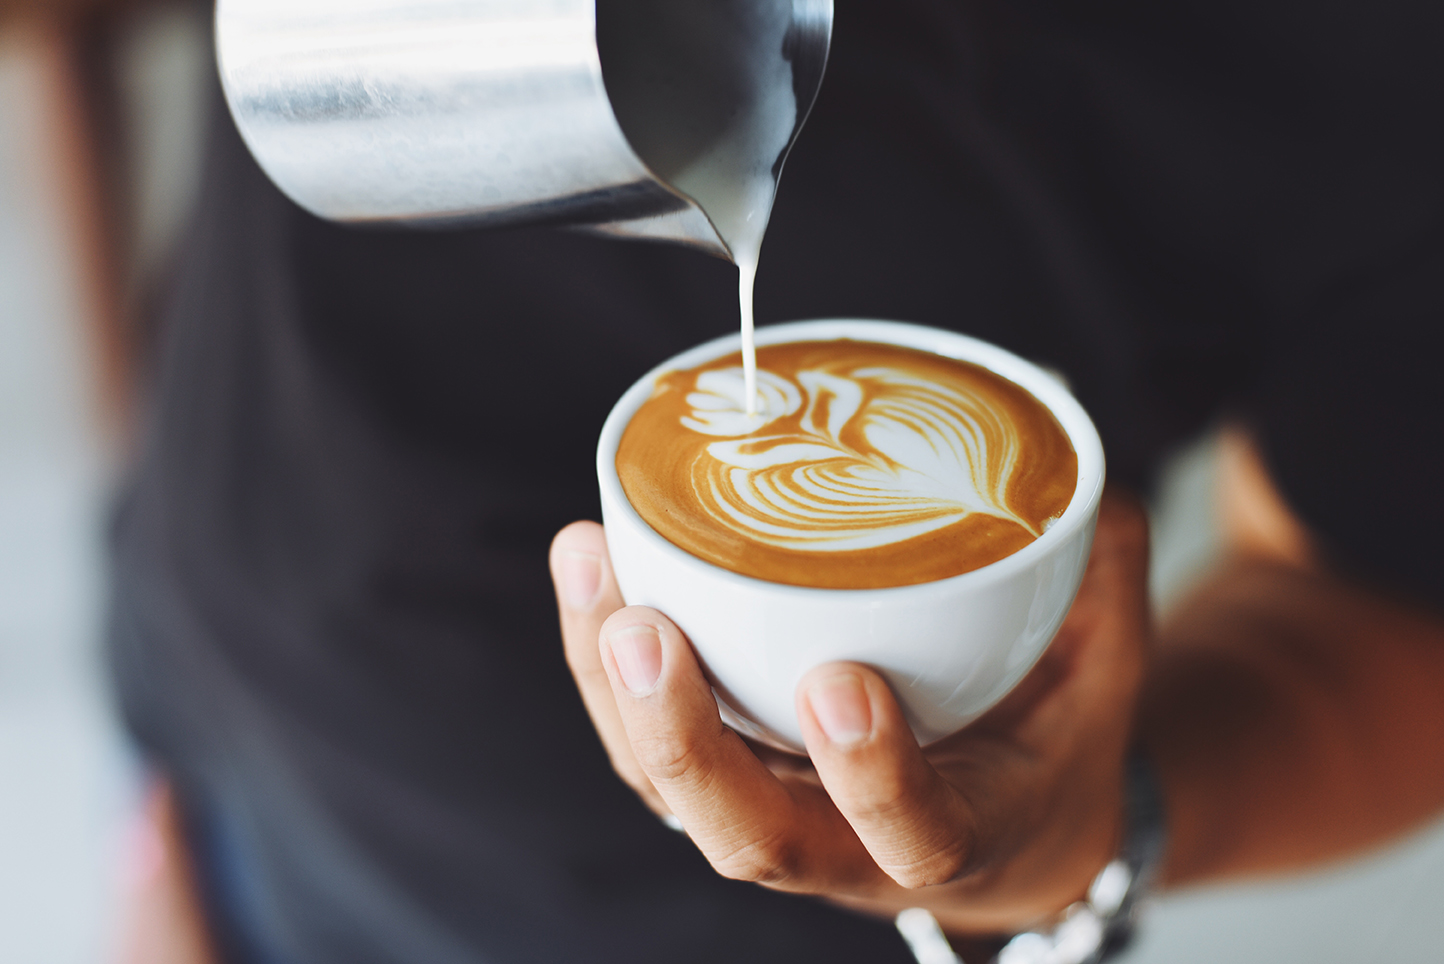 Cup of Coffee made by barista